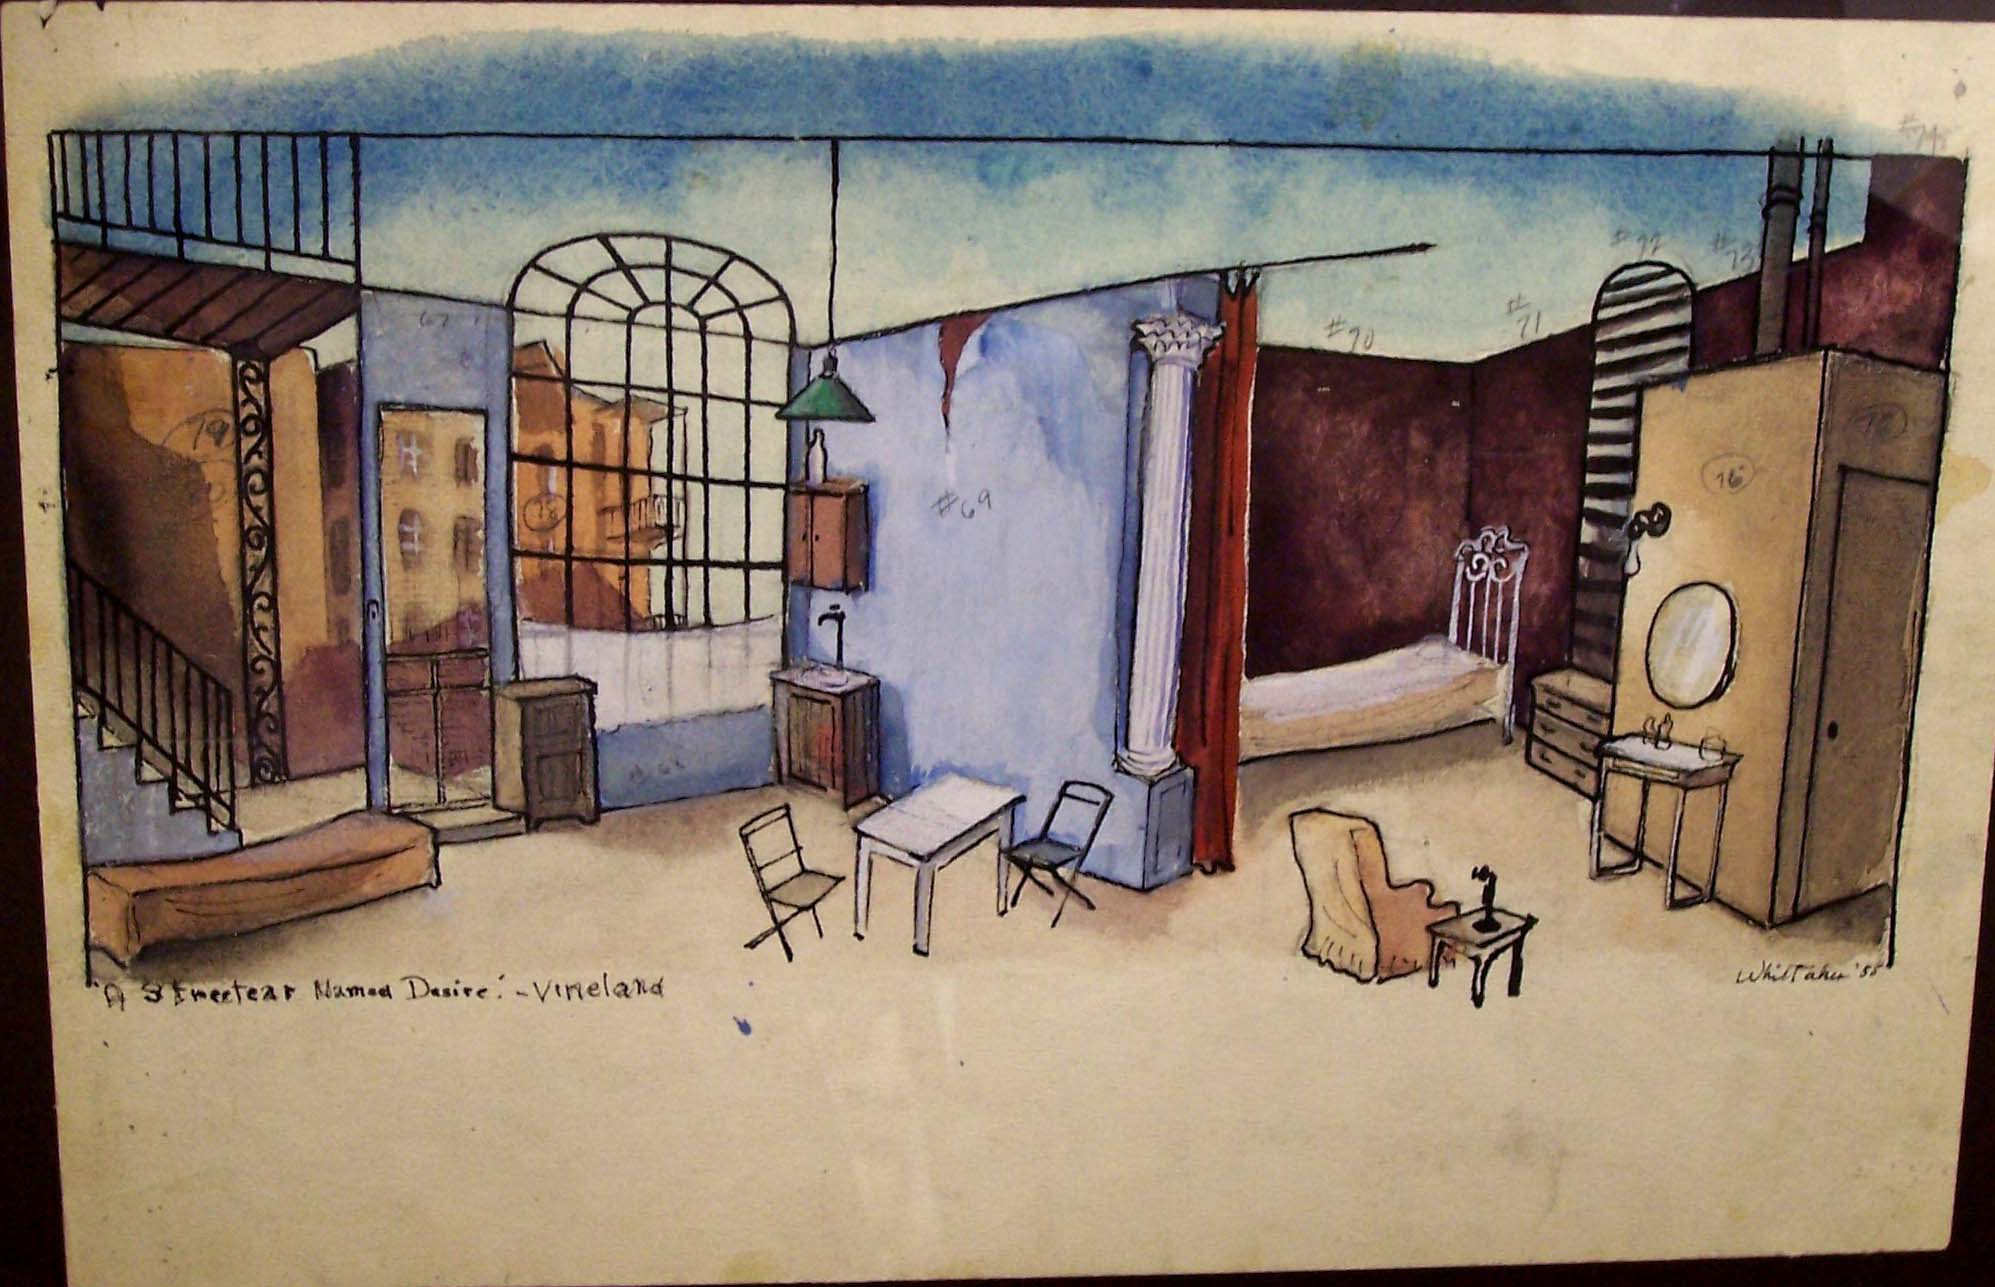 Whittaker set design for A Streetcar named Desire